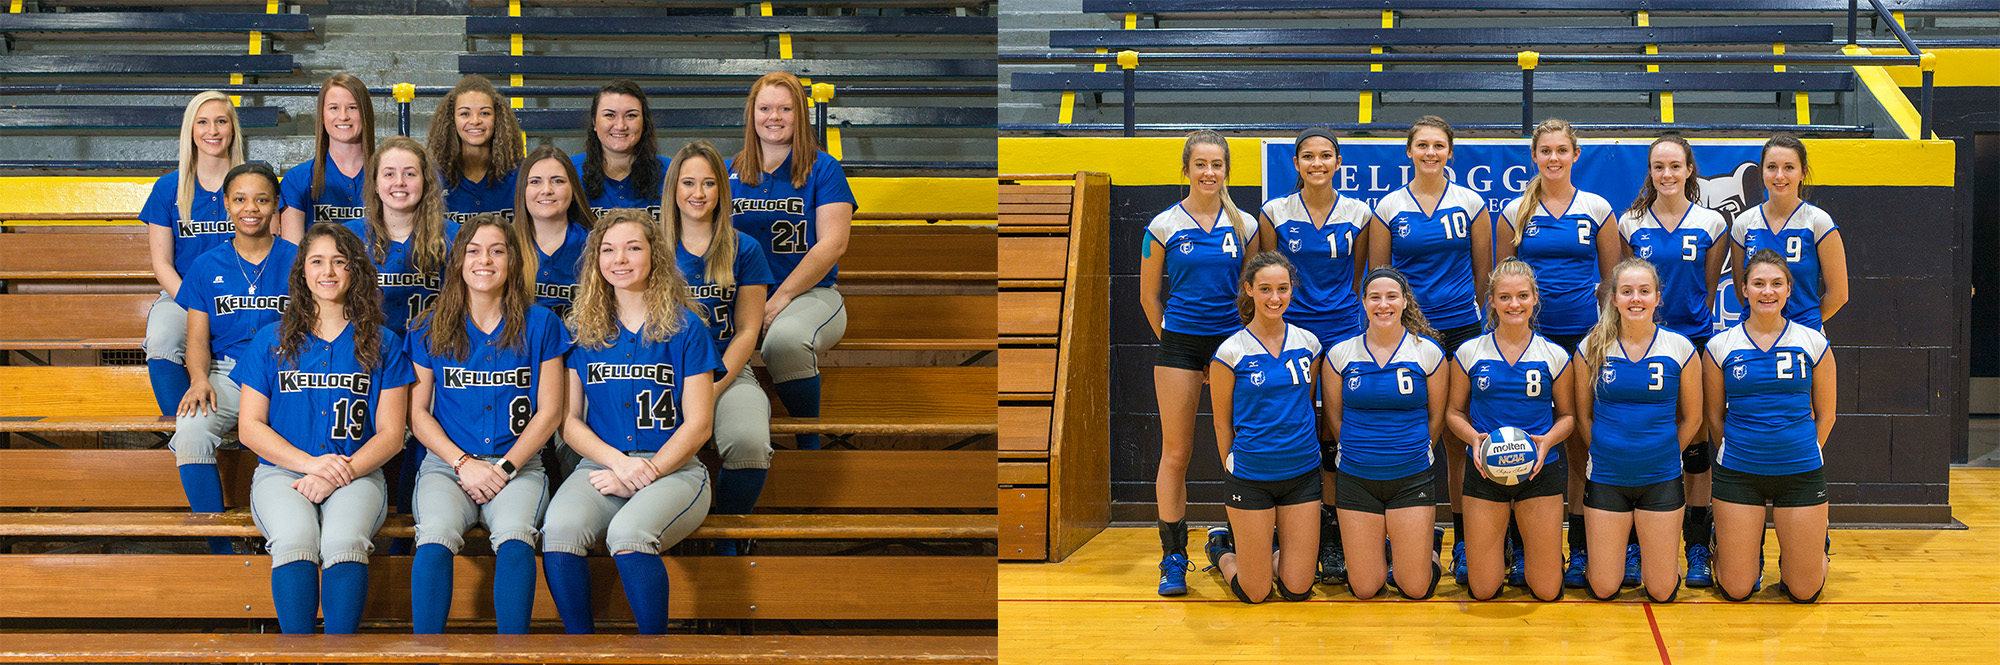 Team photos of KCC's 2017-18 softball and volleyball teams.